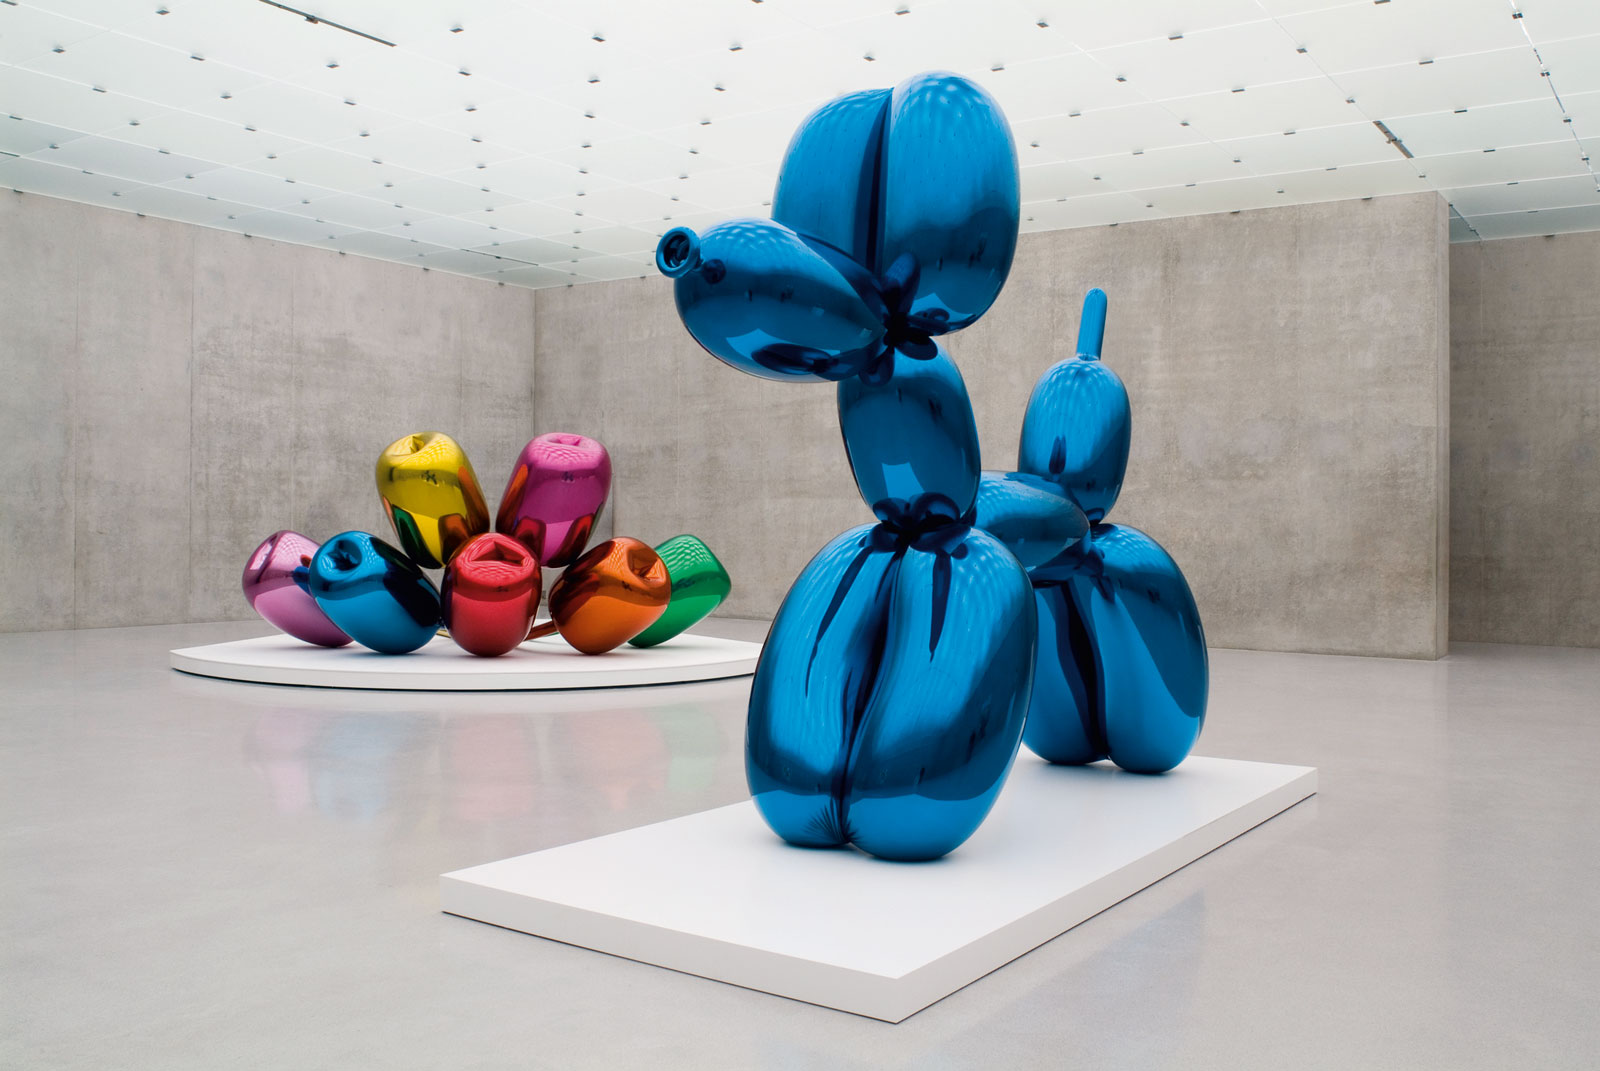 Jeff-Koons-balloondog_blue_KUB-feature.jpg